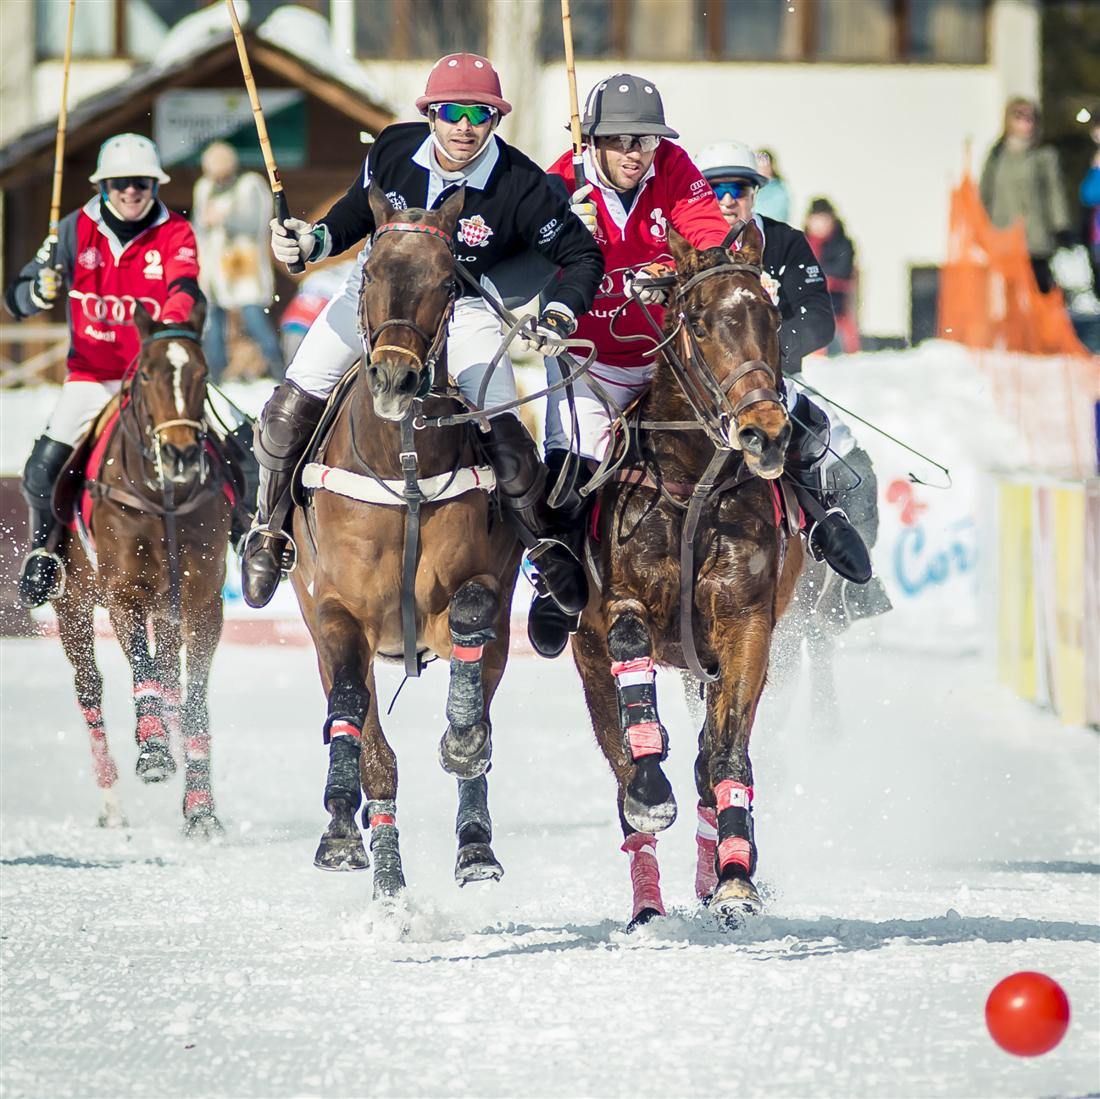 Polo Top Winter Polo Tournament in CORTINA Polo Italy byBandion 5